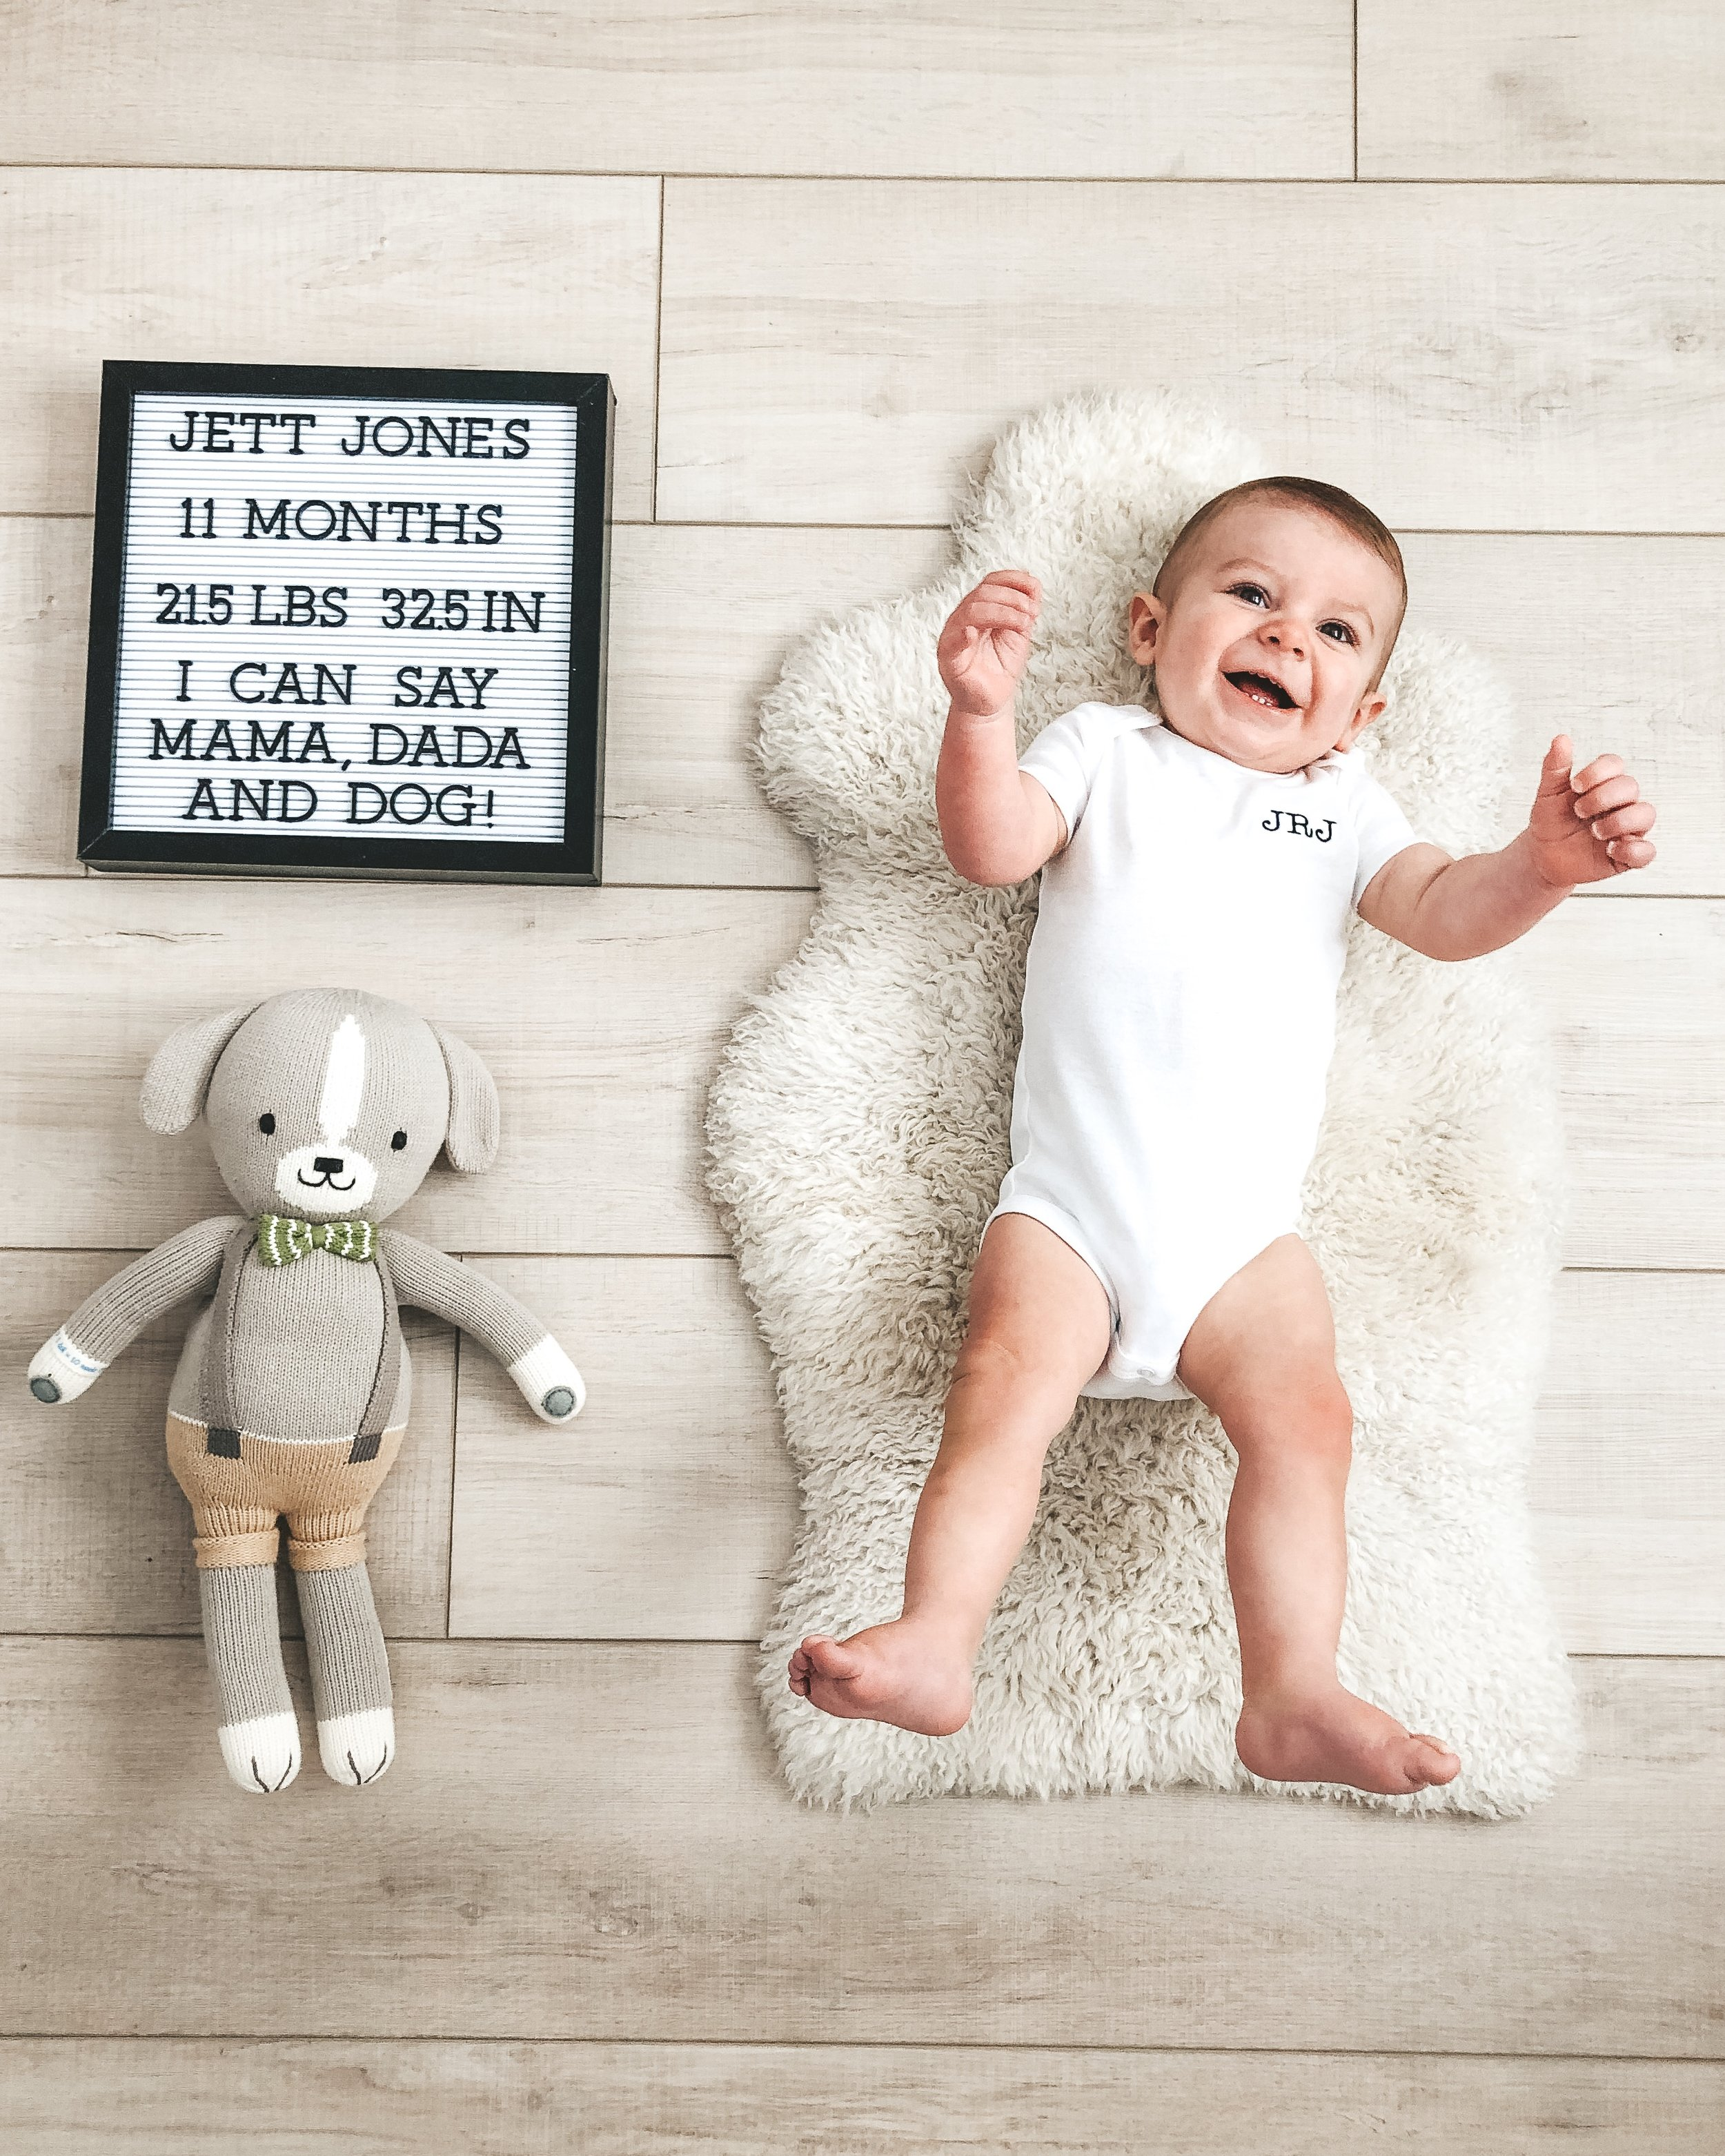 Jett Jones 11 month milestones.